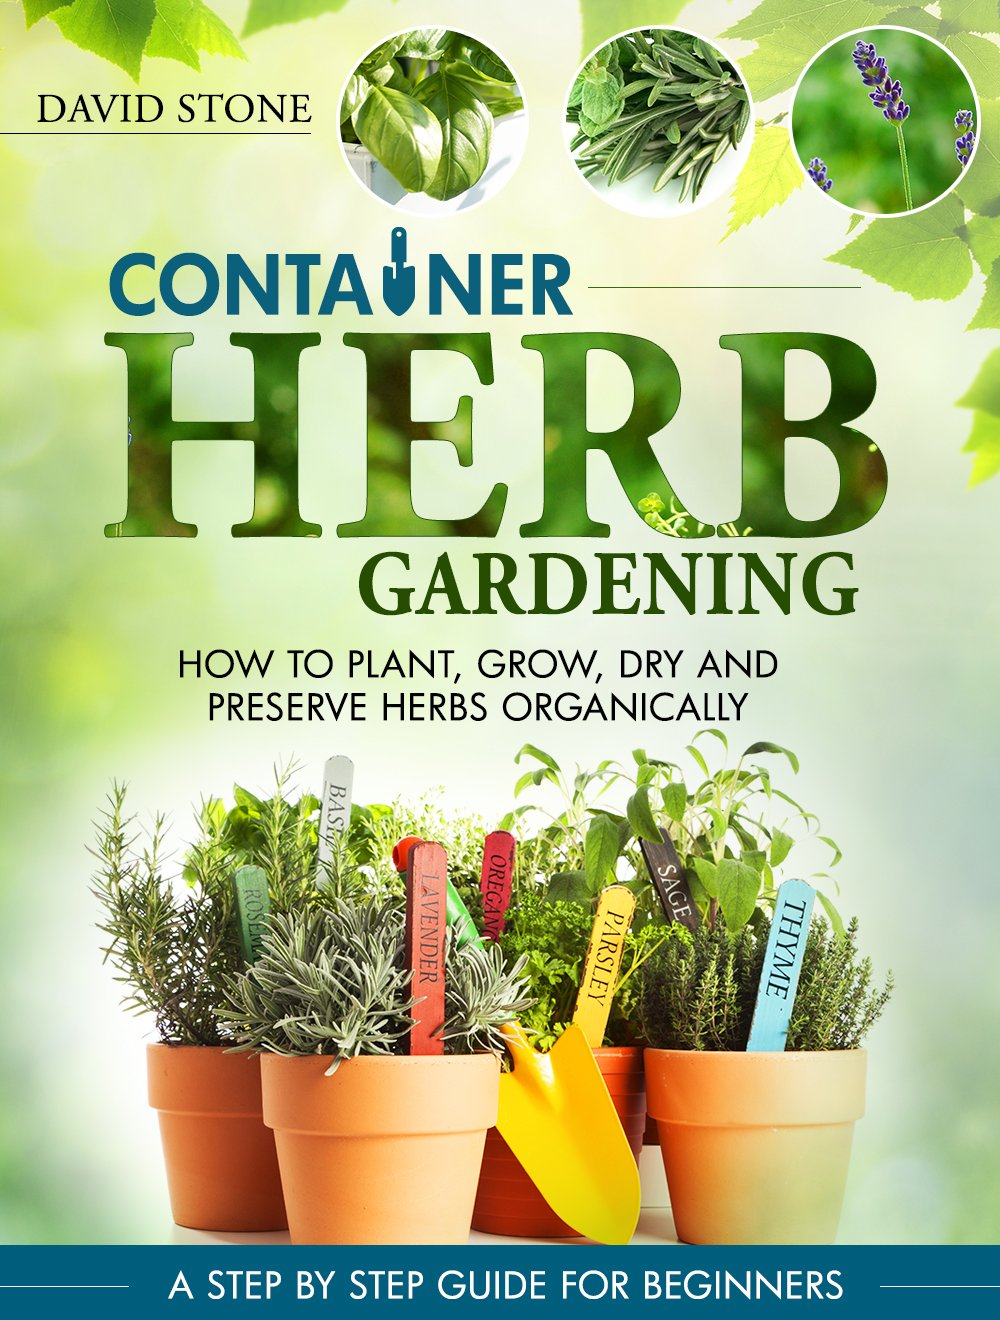 http://www.amazon.com/Container-Herb-Gardening-Preserve-Organically-ebook/dp/B00N8A9GZO/ref=as_sl_pc_ss_til?tag=lettfromahome-20&linkCode=w01&linkId=FWTFG7P5MLMOSKOA&creativeASIN=B00N8A9GZO